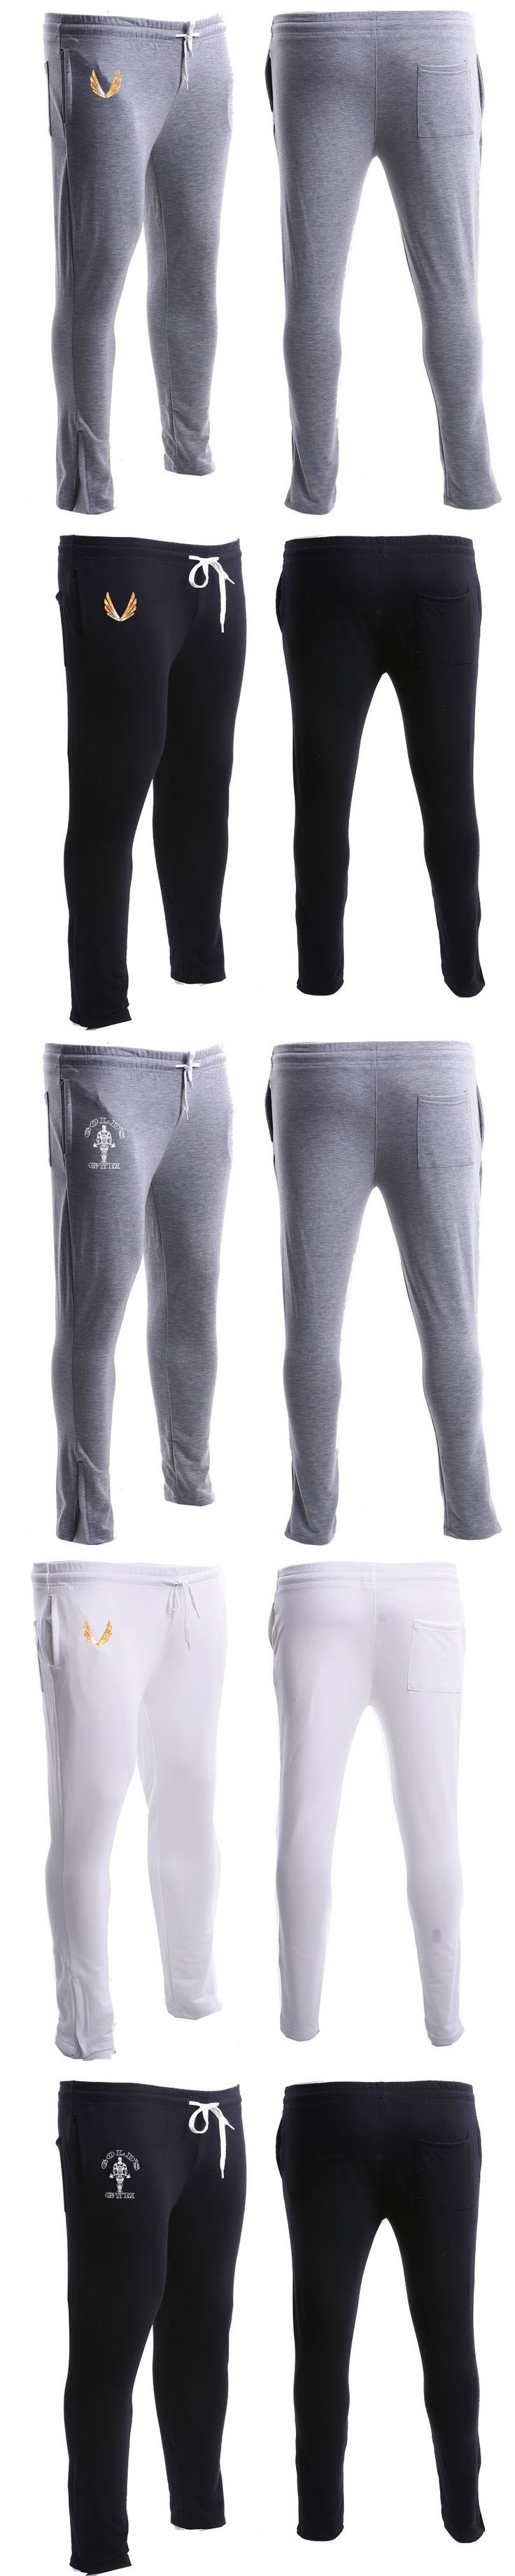 2017 High Quality Jogger Pants Men Fitness Bodybuilding Golds Gyms Pants For Runners Clothing Autumn Sweat Trousers Britches